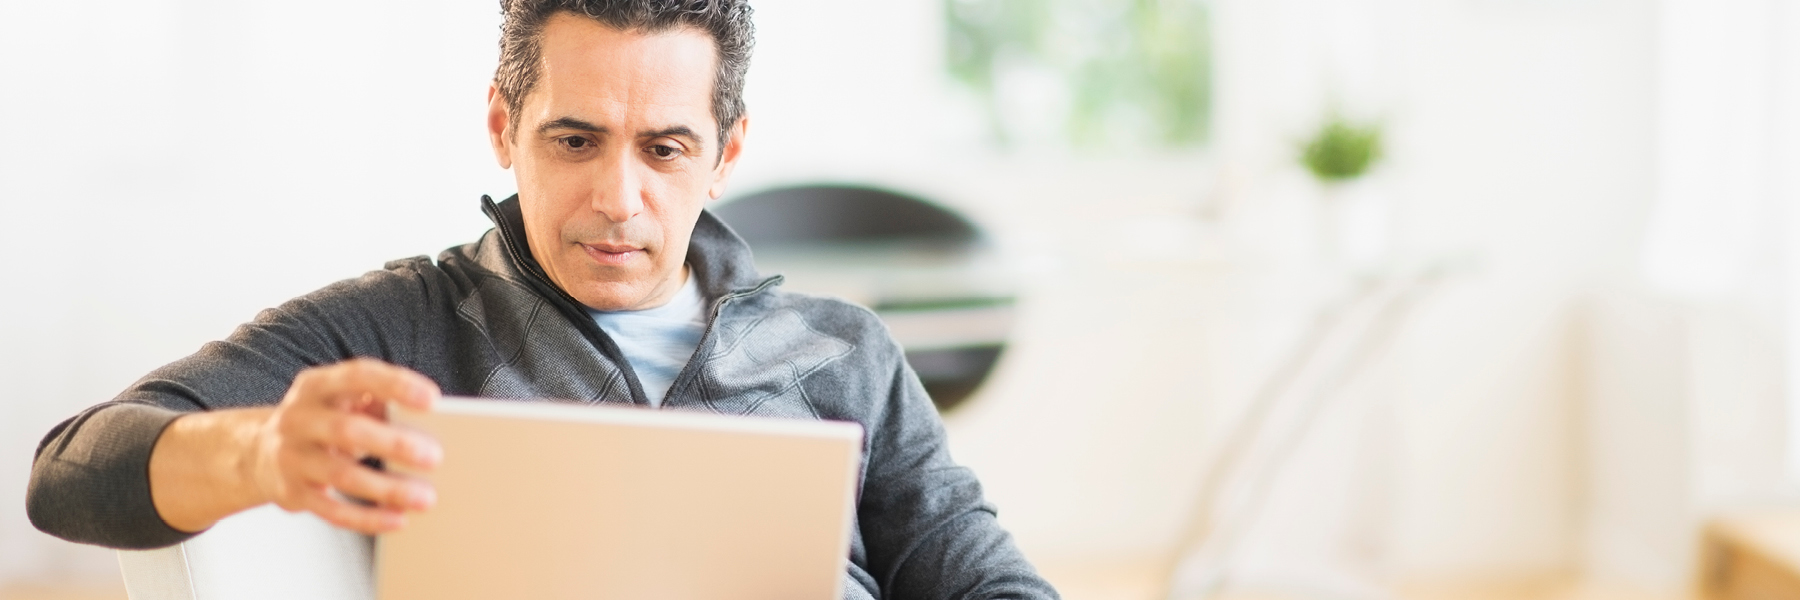 Working from Home: How to Stay Healthy and Focused